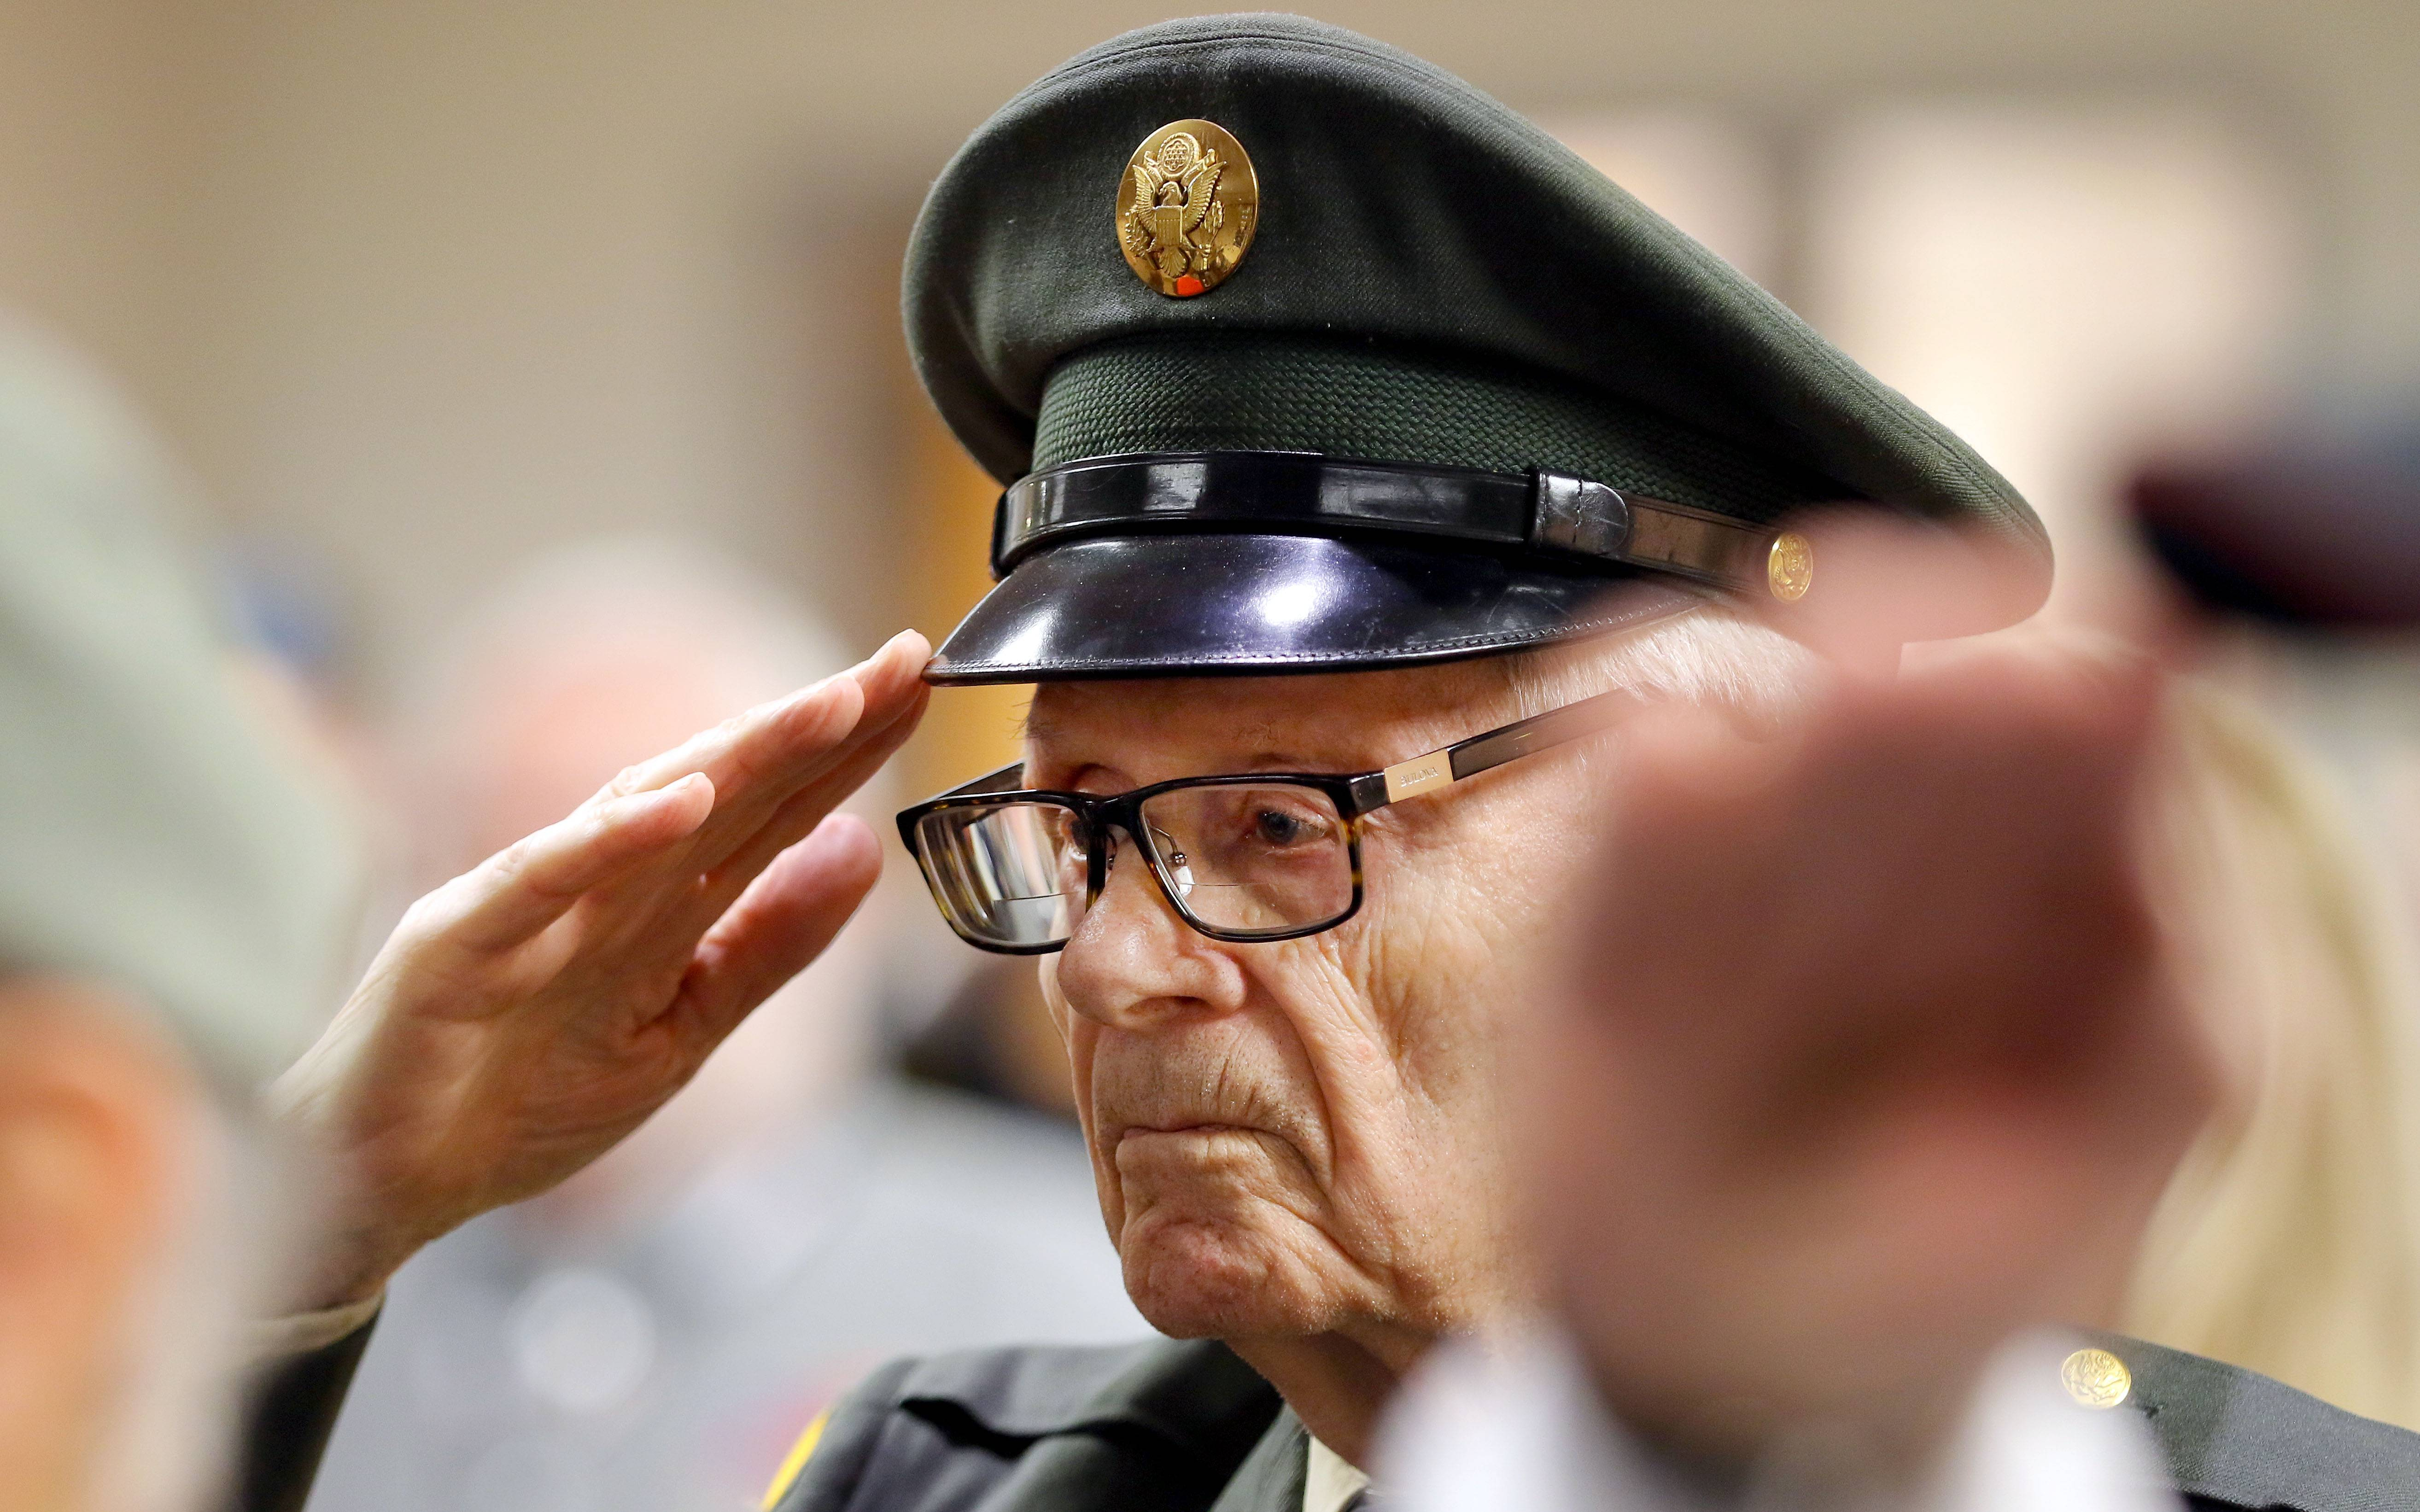 Veteran Orval Kolden of Lake Forest salutes during a Veterans Day ceremony at the College of Lake County Friday in Grayslake. Kolden served in the Army from 1946-1974.